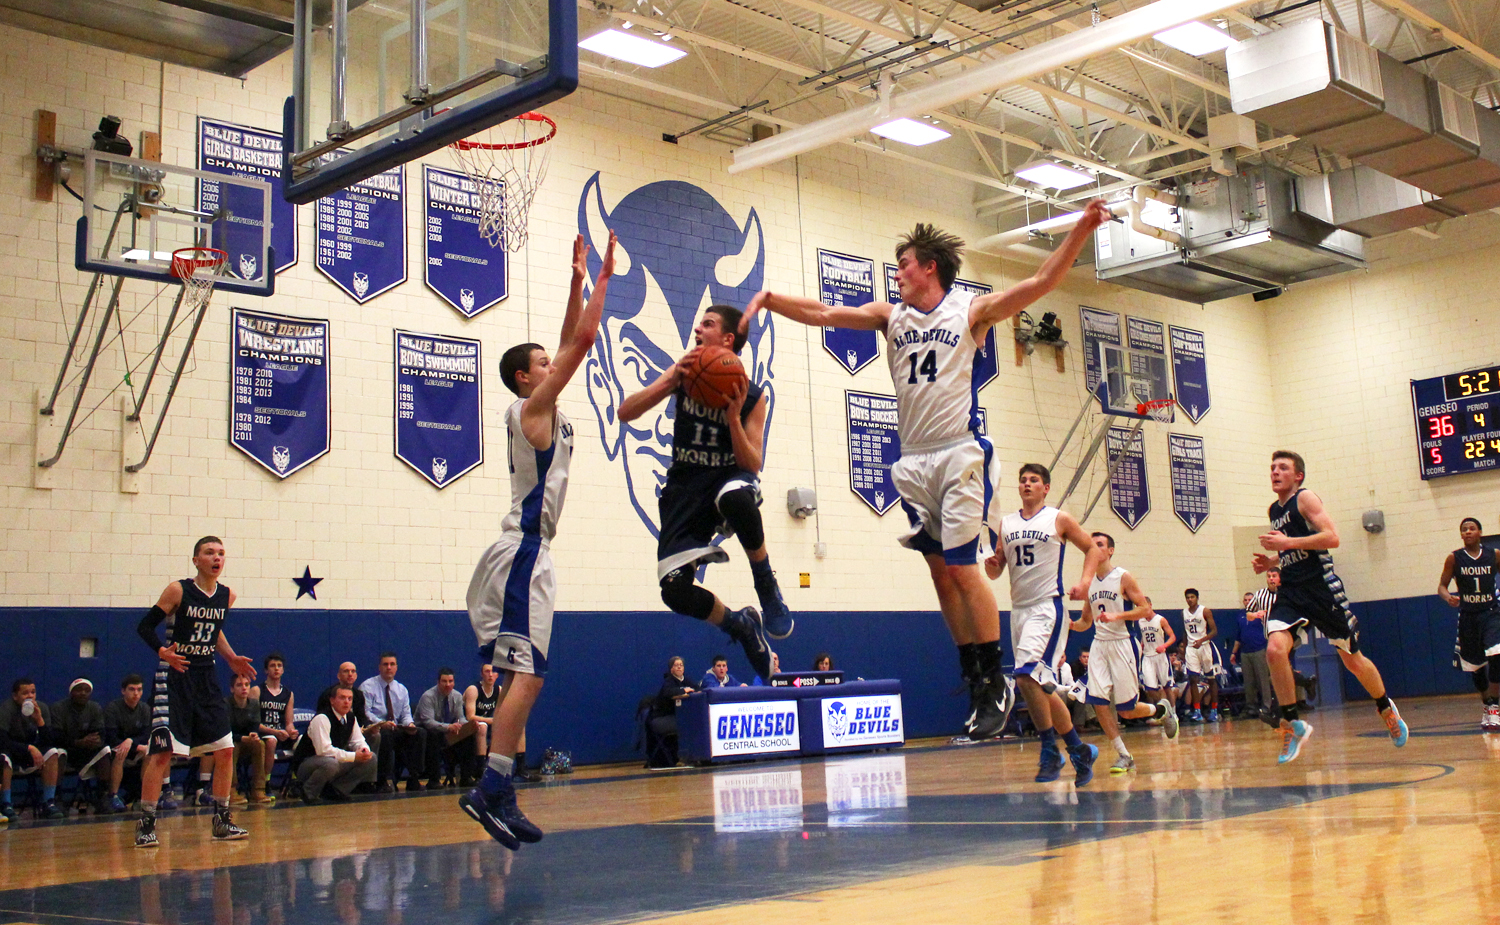 BOYS BASKETBALL: Mount Morris Defeats Geneseo On Home Turf